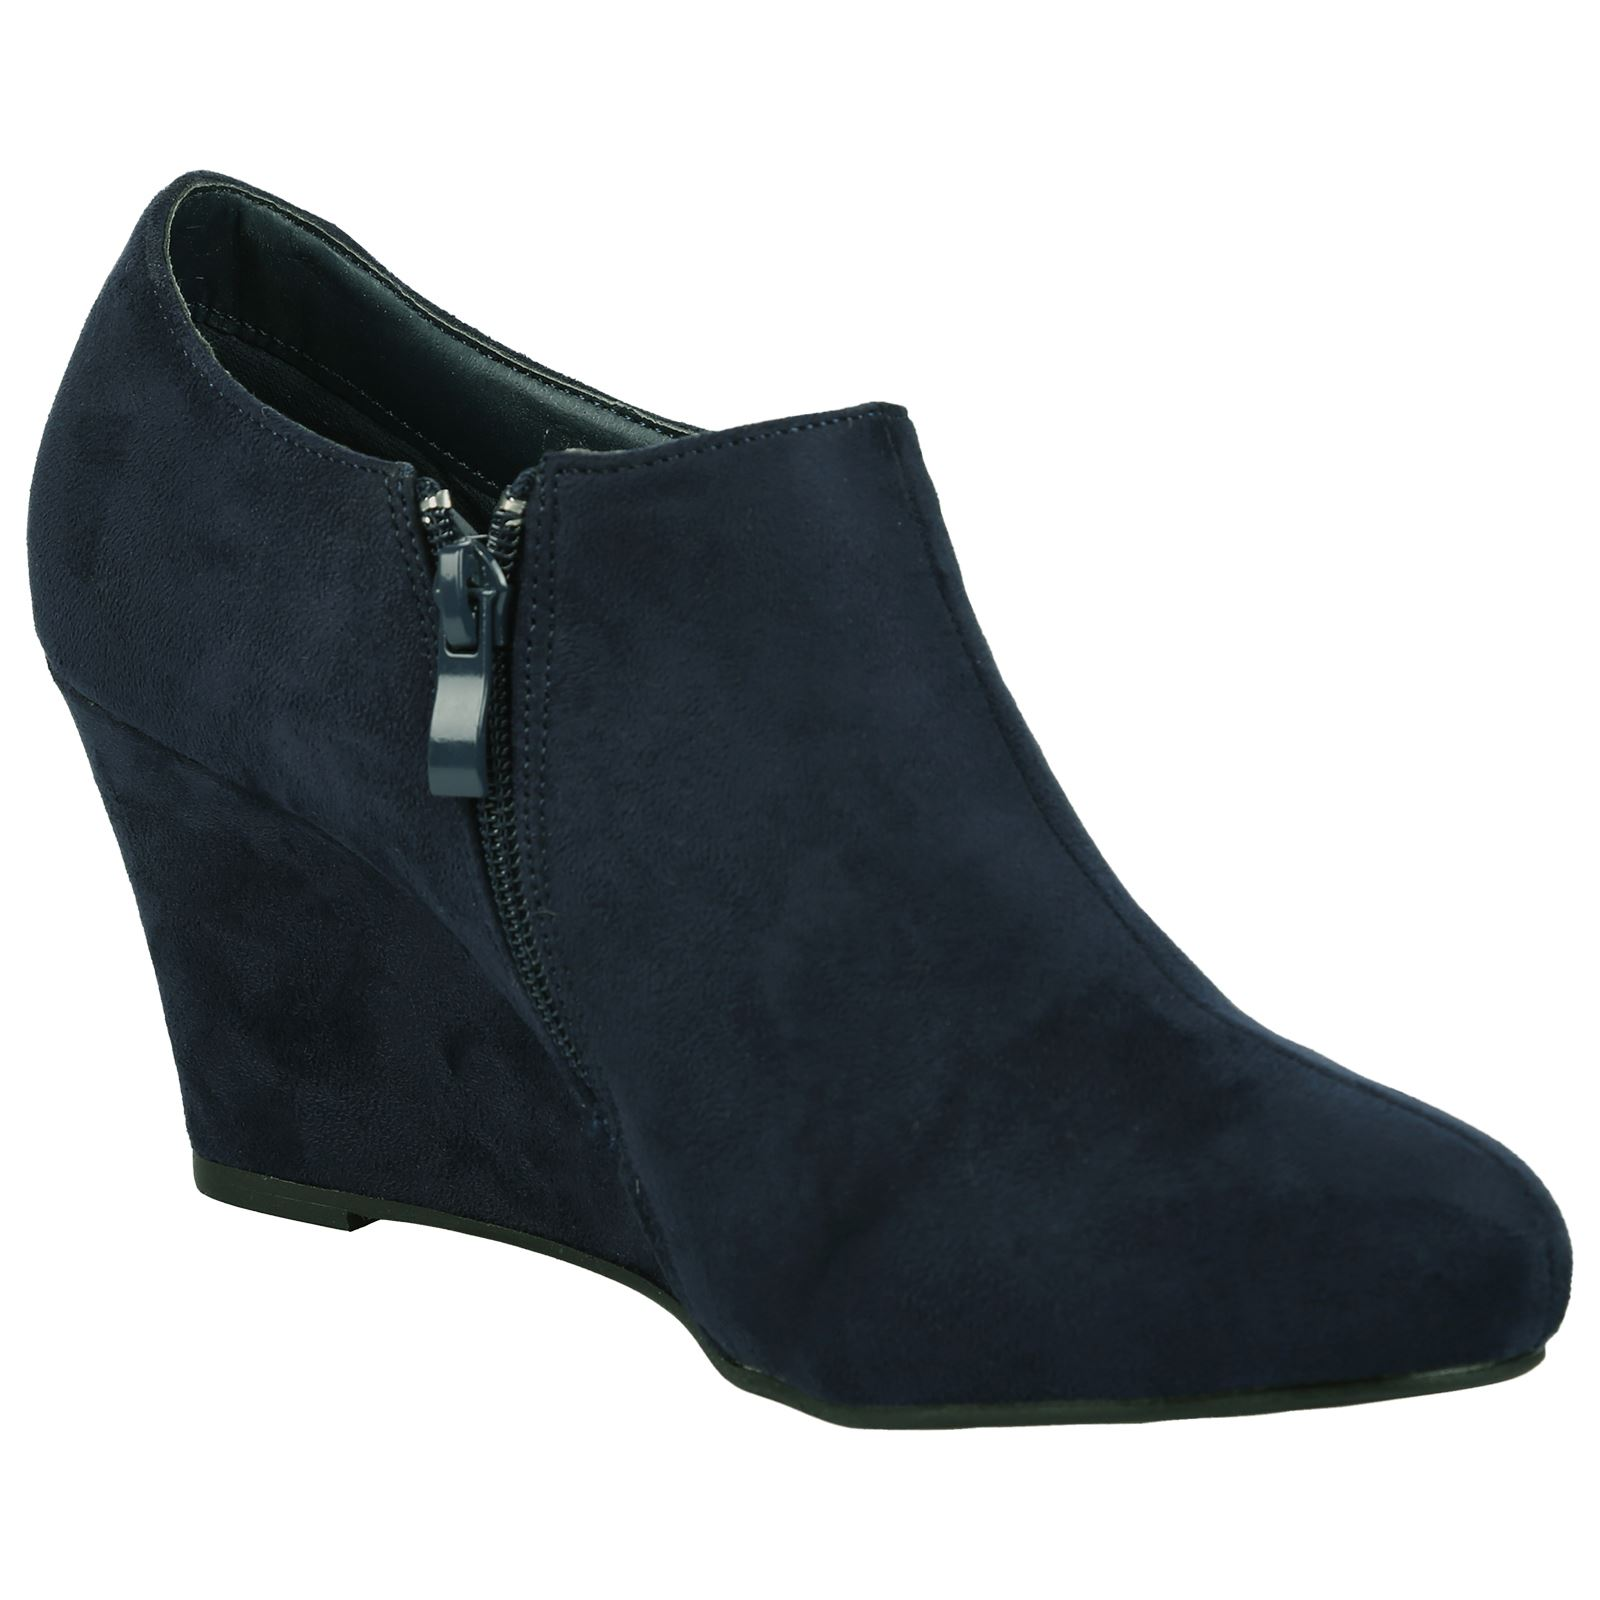 WOMENS SHOES LADIES ANKLE BOOTS BOOTIES WEDGES HIGH HEELS SMART CASUAL SIZE NEW